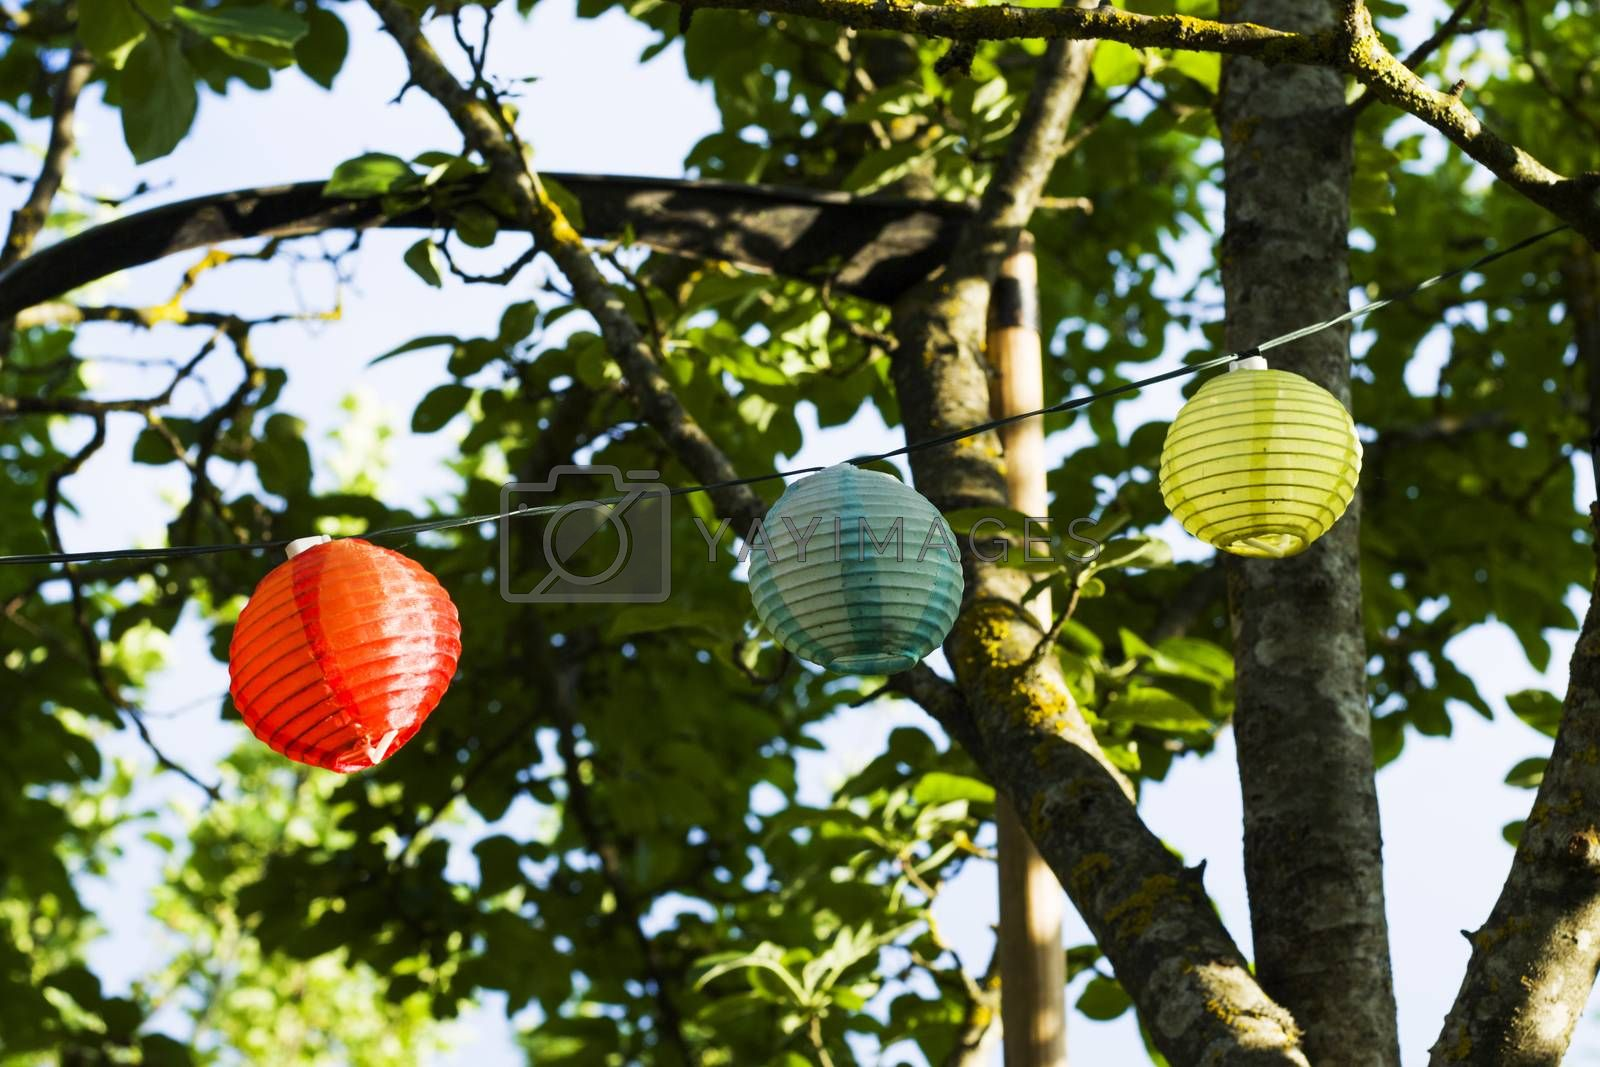 Lantern in the yard on the tree bokeh background, night and warm light, hanging lanterns, natural light, evening time.